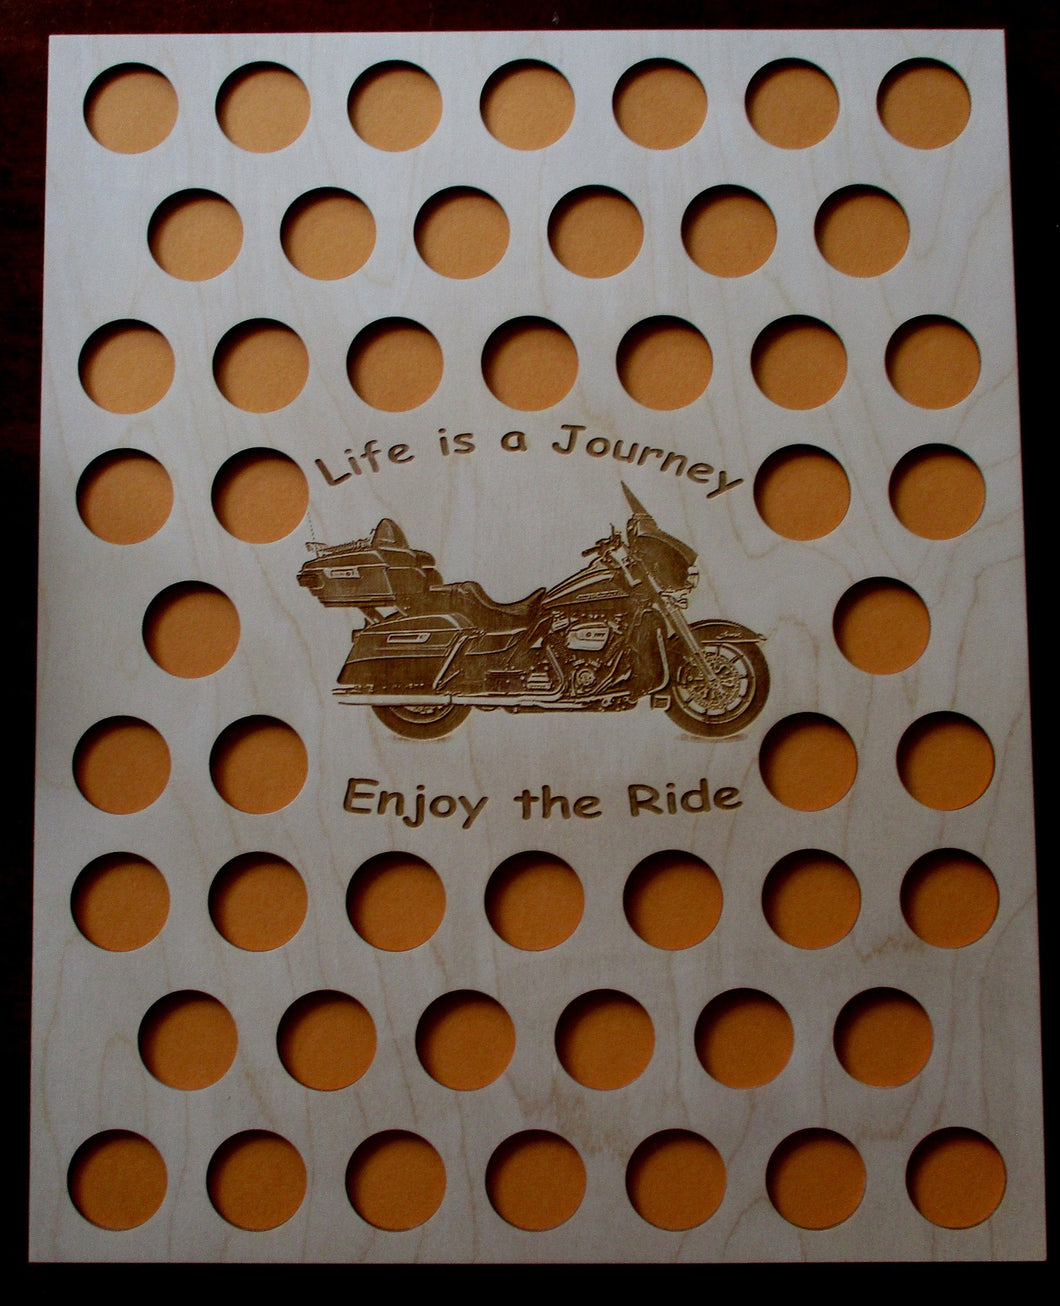 Custom Casino Poker Chip Display Frame Insert 16x20 wood insert Fits 50 Harley and Casino chips Engraved Life is a Journey